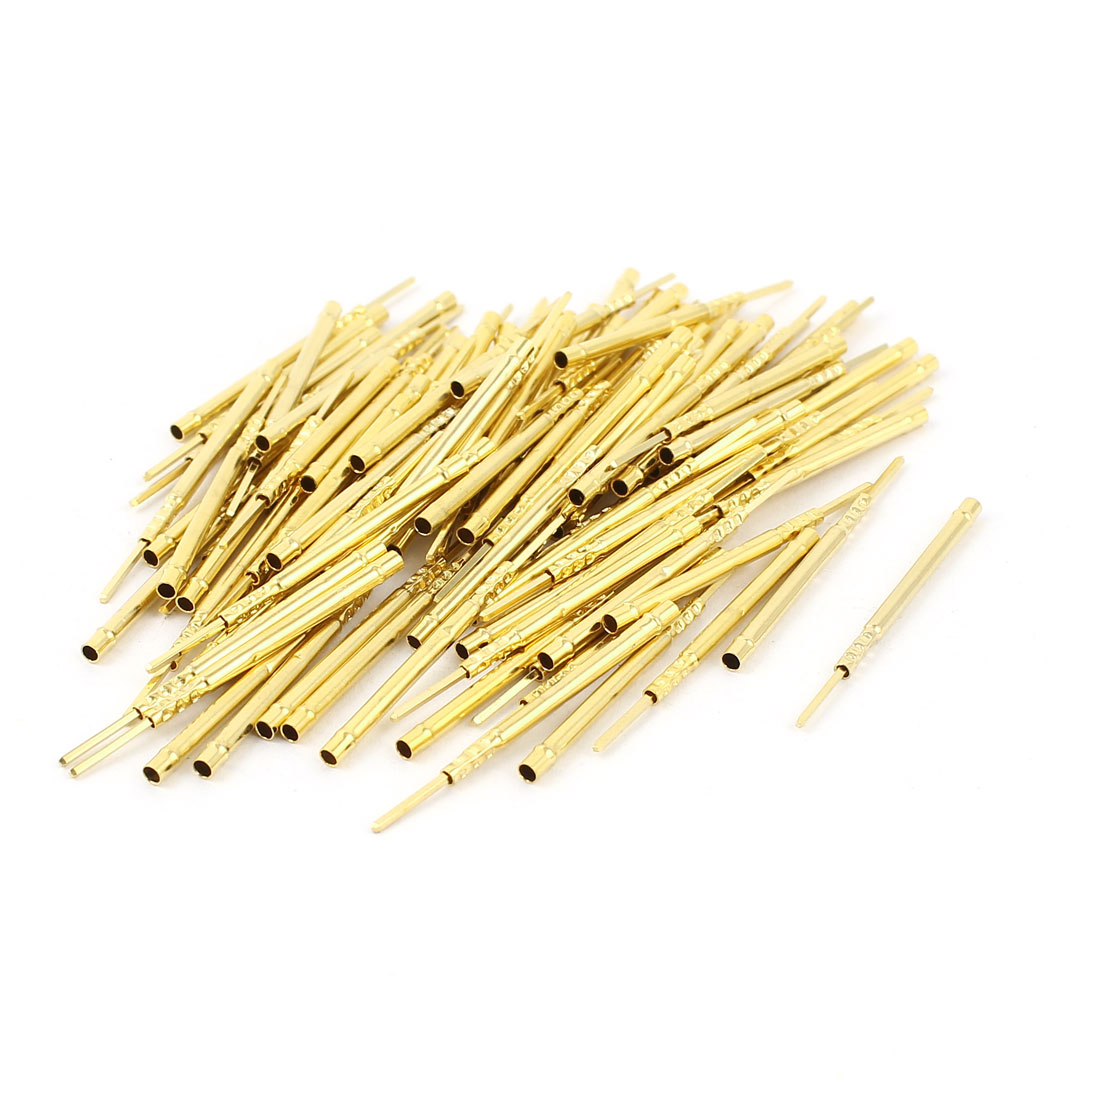 100 Pcs R160-2W 1.67mm Dia Testing Probe Pin Receptacles Gold Tone